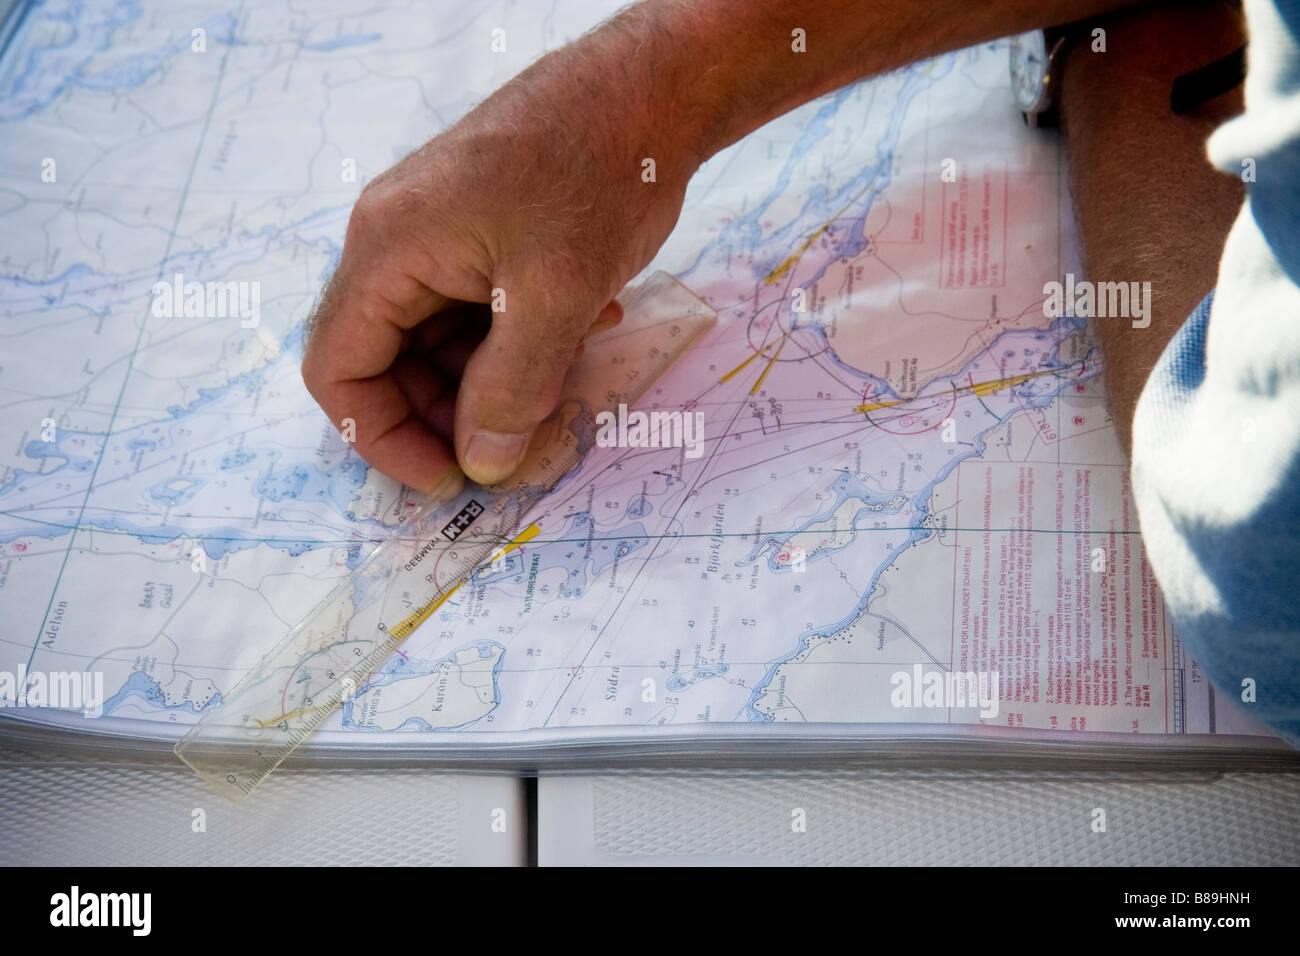 Calculating distance on nautical chart - Stock Image